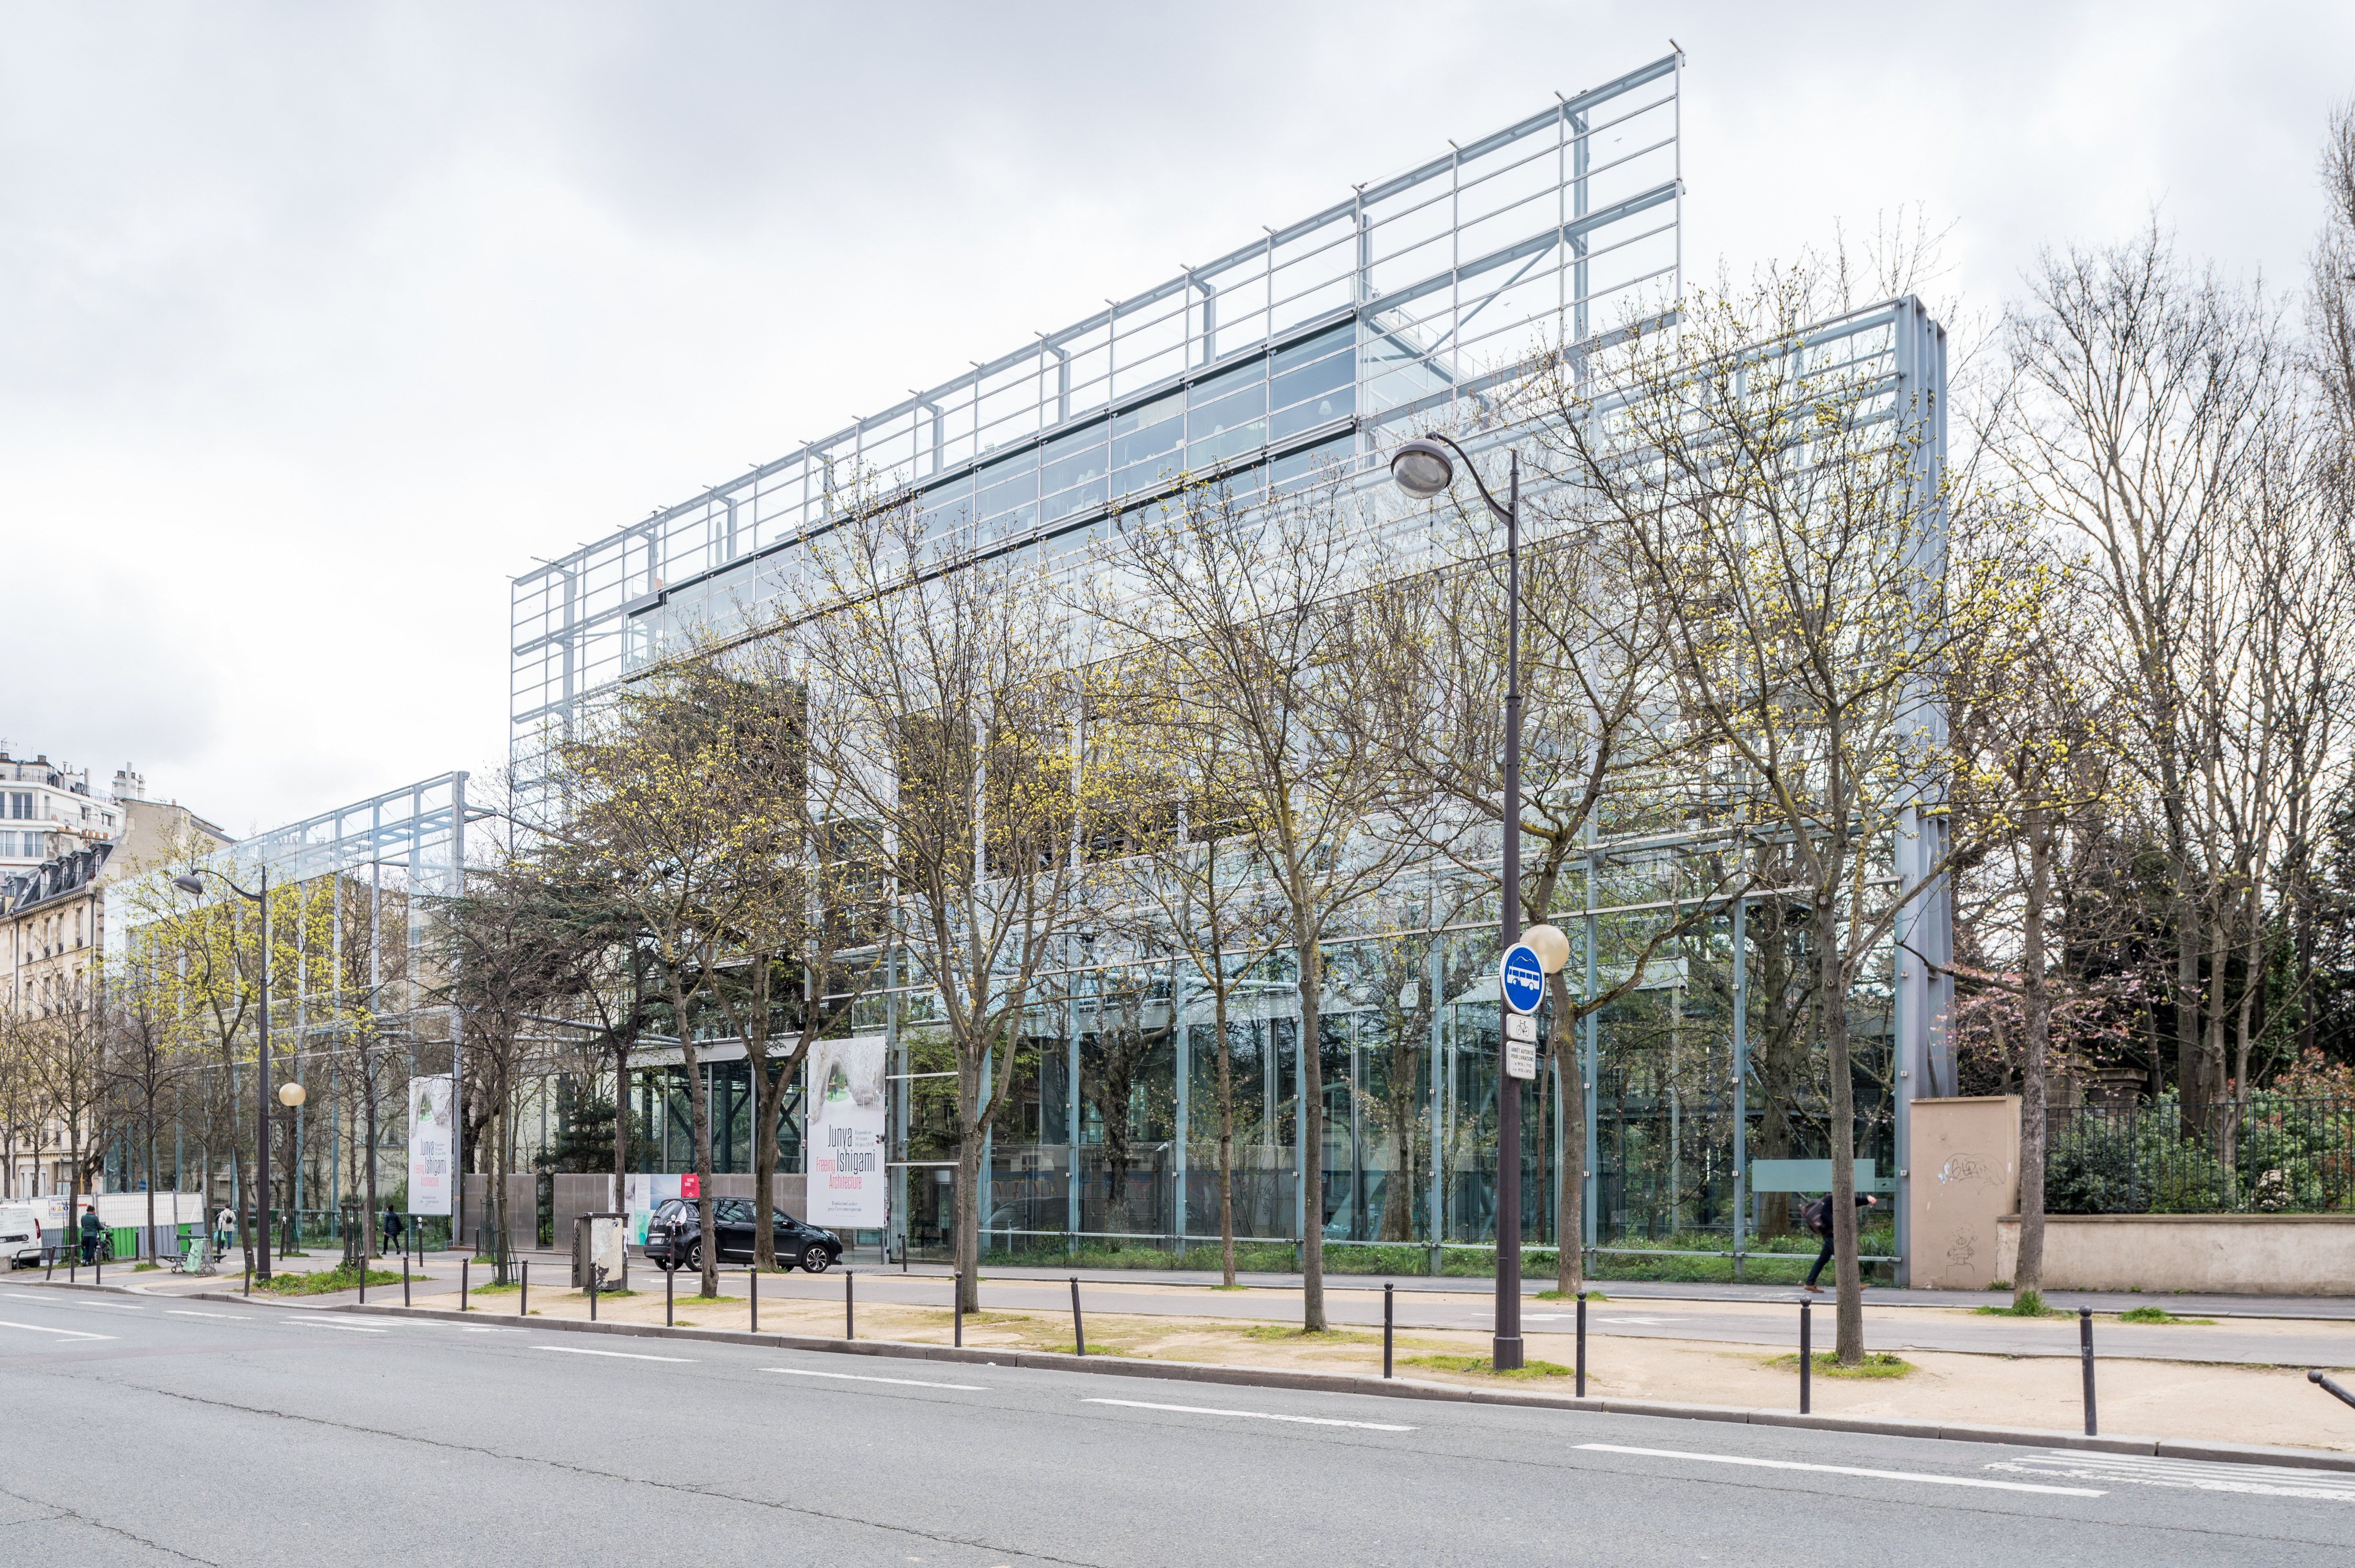 glass and metal facade on a tree-lined city street